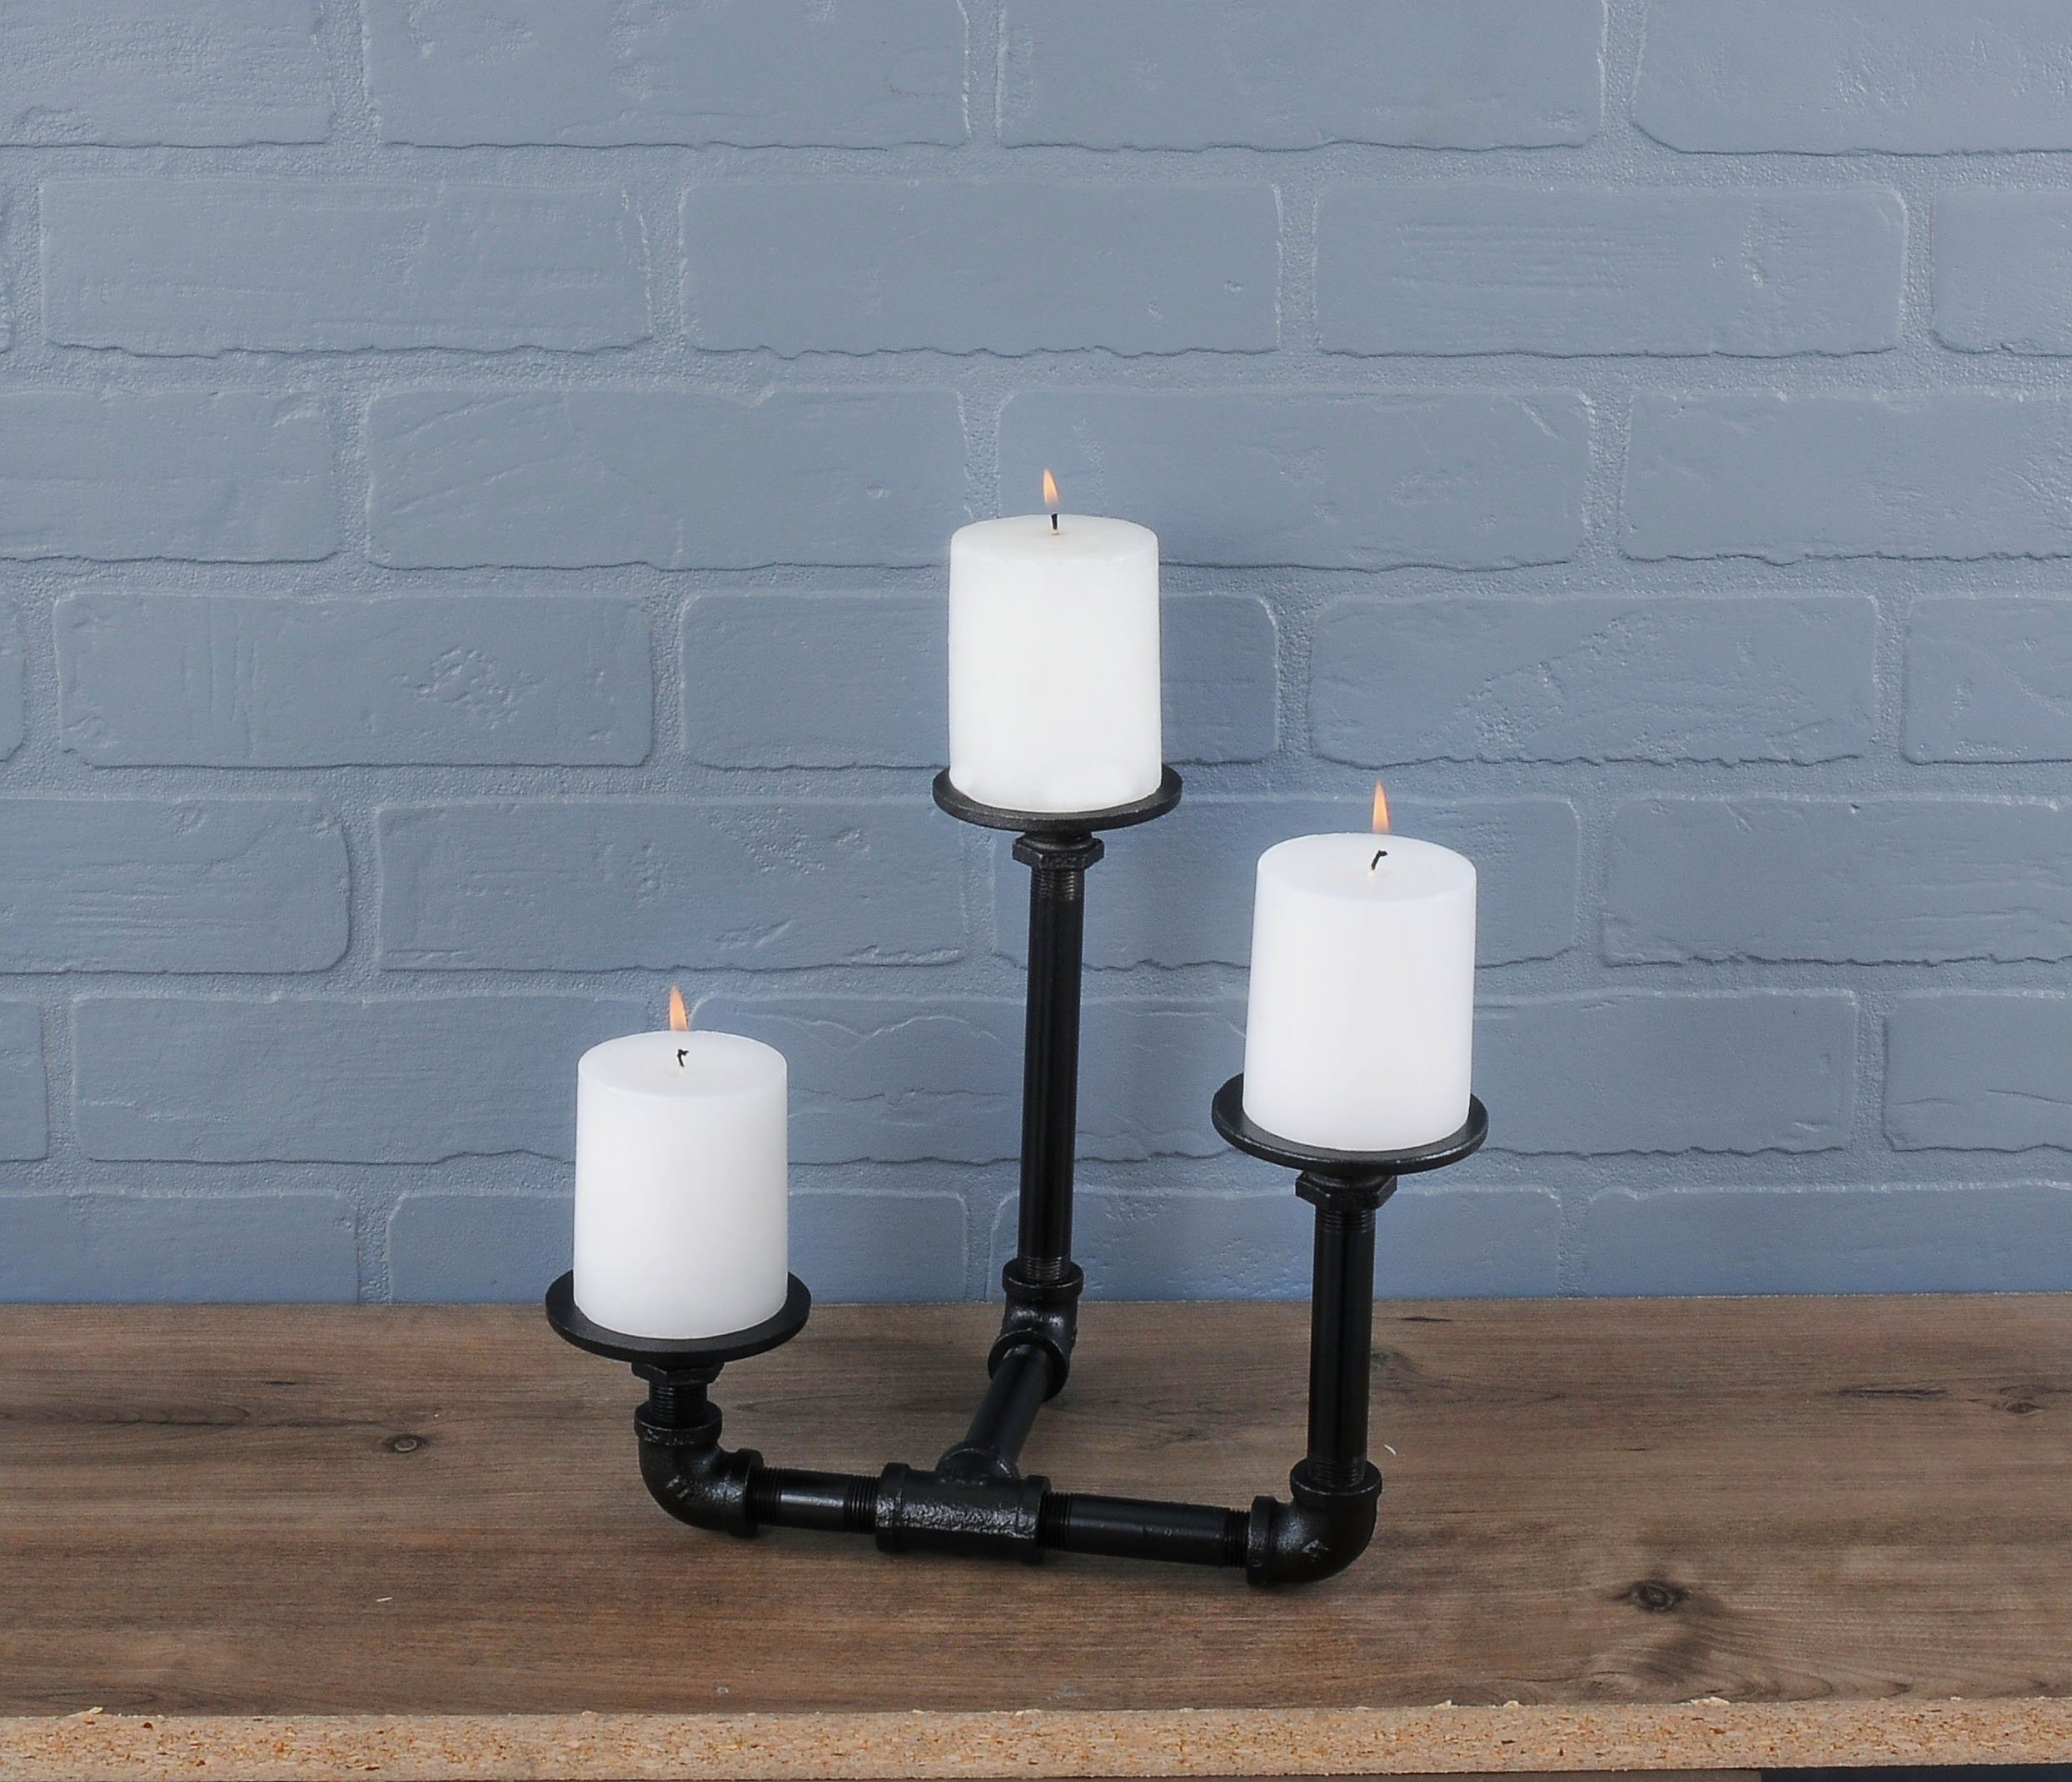 Pipe Décor Industrial 3 Branch Pillar Candle Holder Complete Set Electroplated Black Finish - 38CNPL4-BK- Rustic and… 4